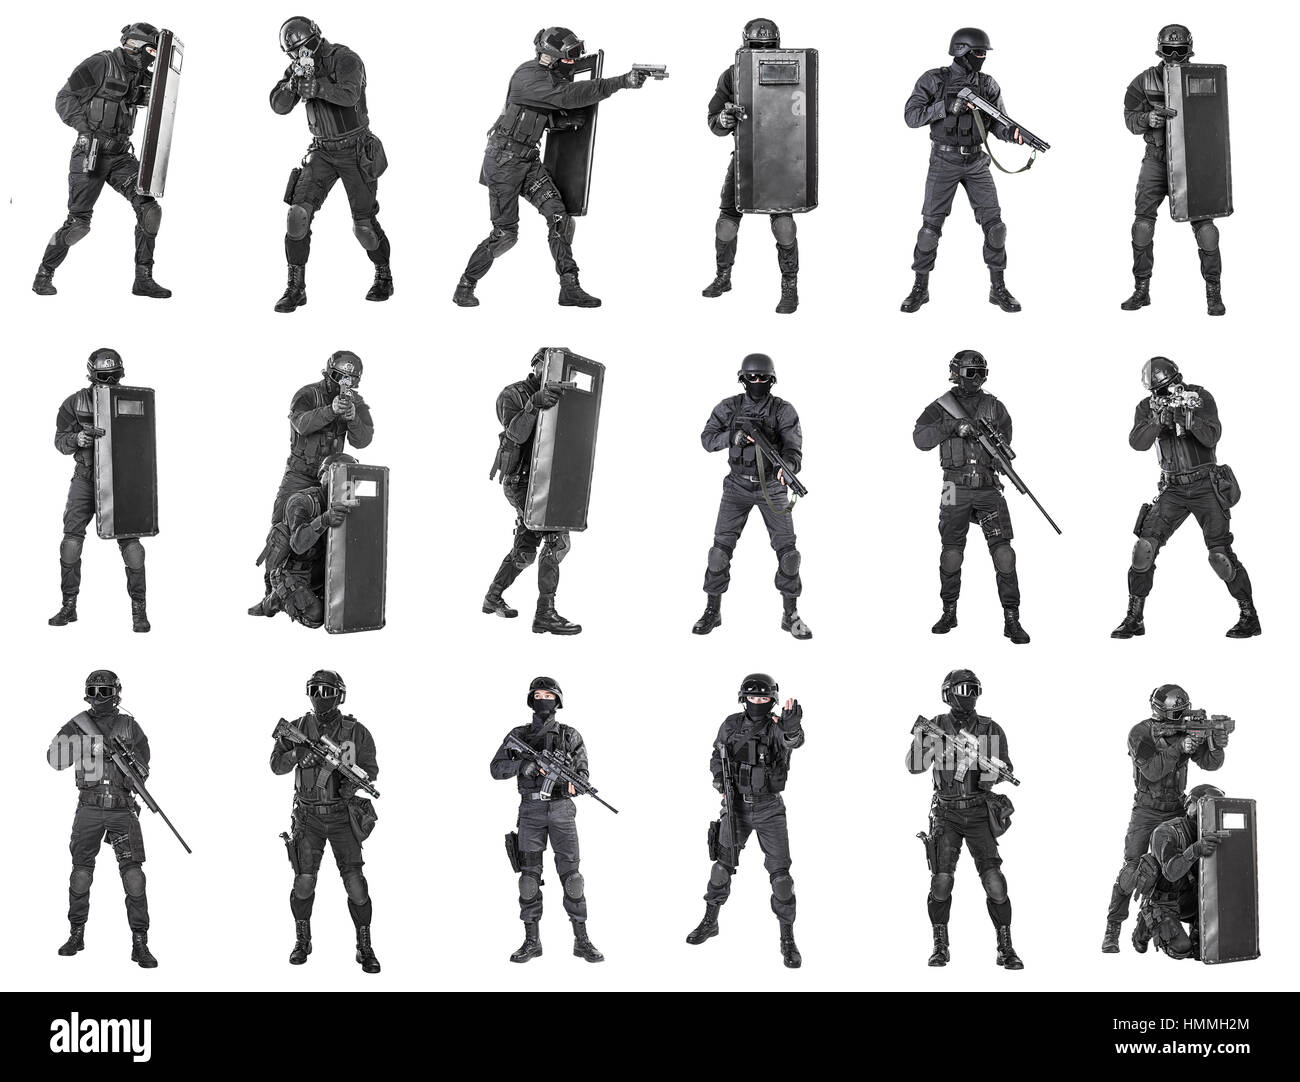 police officers SWAT - Stock Image